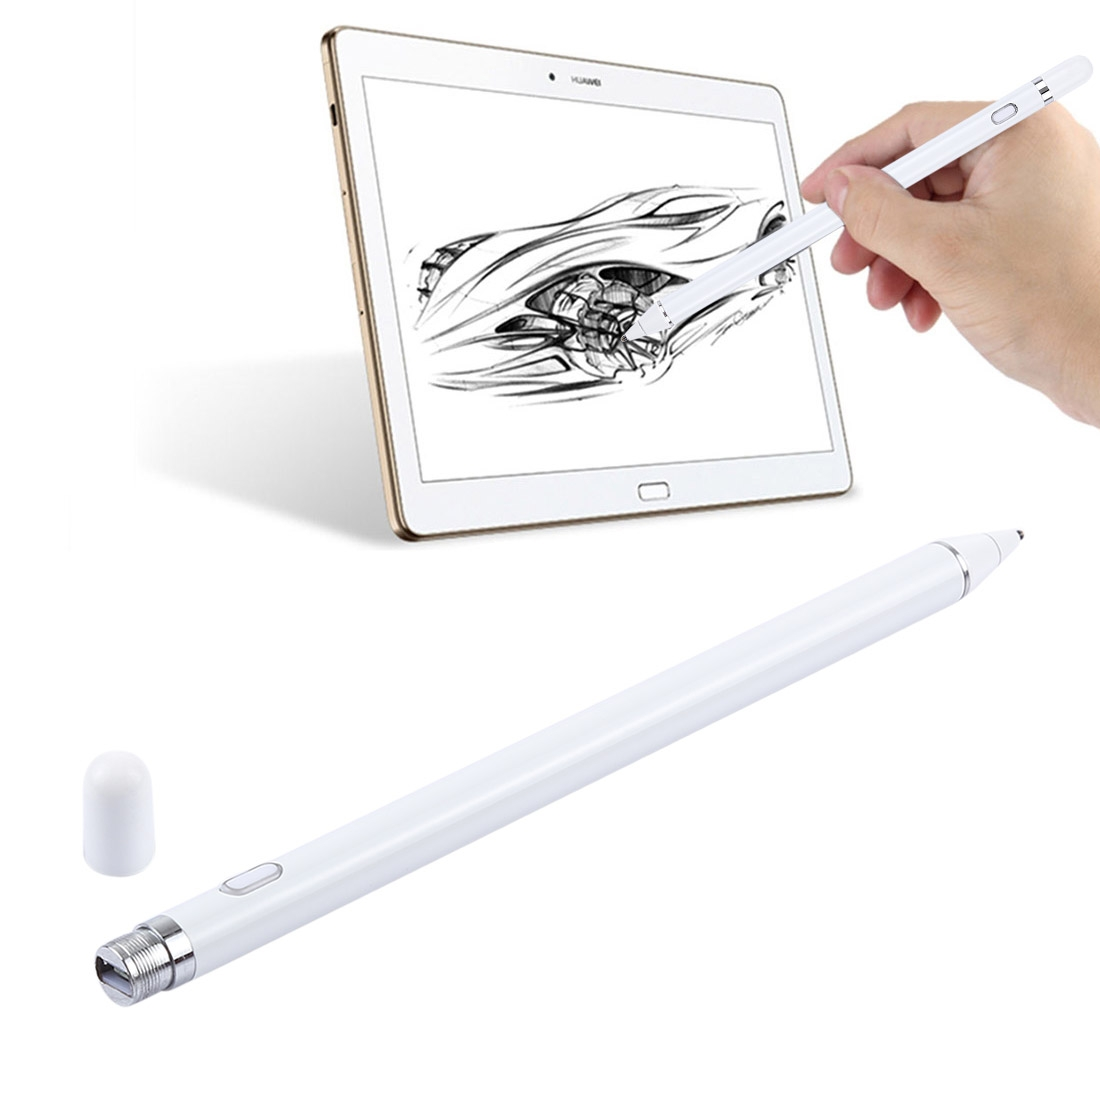 Long Universal Rechargeable Capacitive Touch Screen Stylus Pen with 2.3mm Superfine Metal Nib, For iPhone, iPad, Samsung, and Other Capacitive Touch Screen Smartphones or Tablet PC (White)